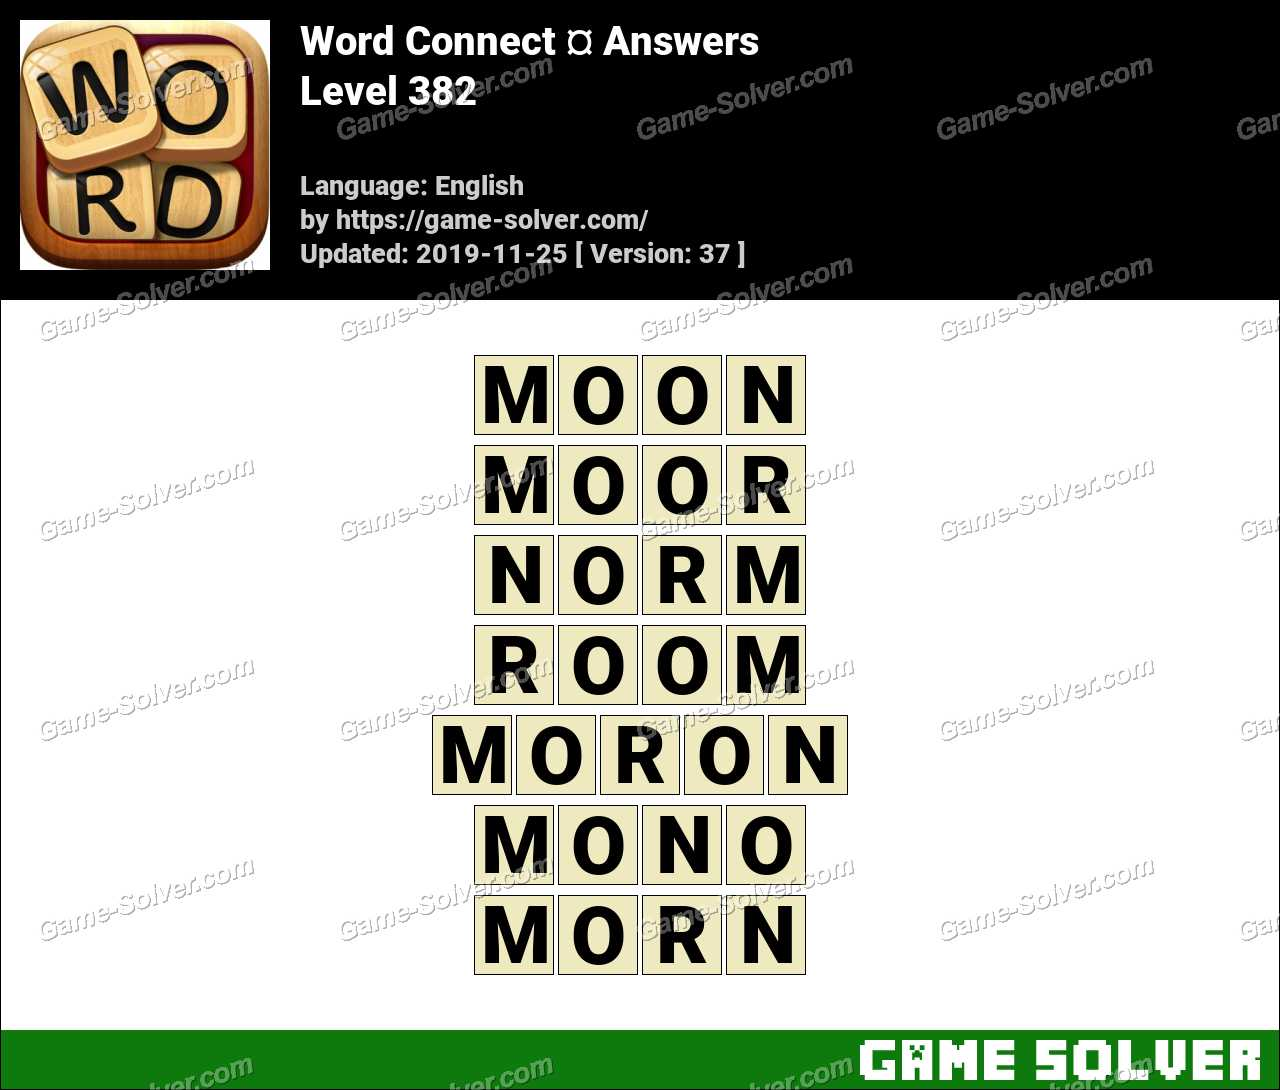 Word Connect Level 382 Answers